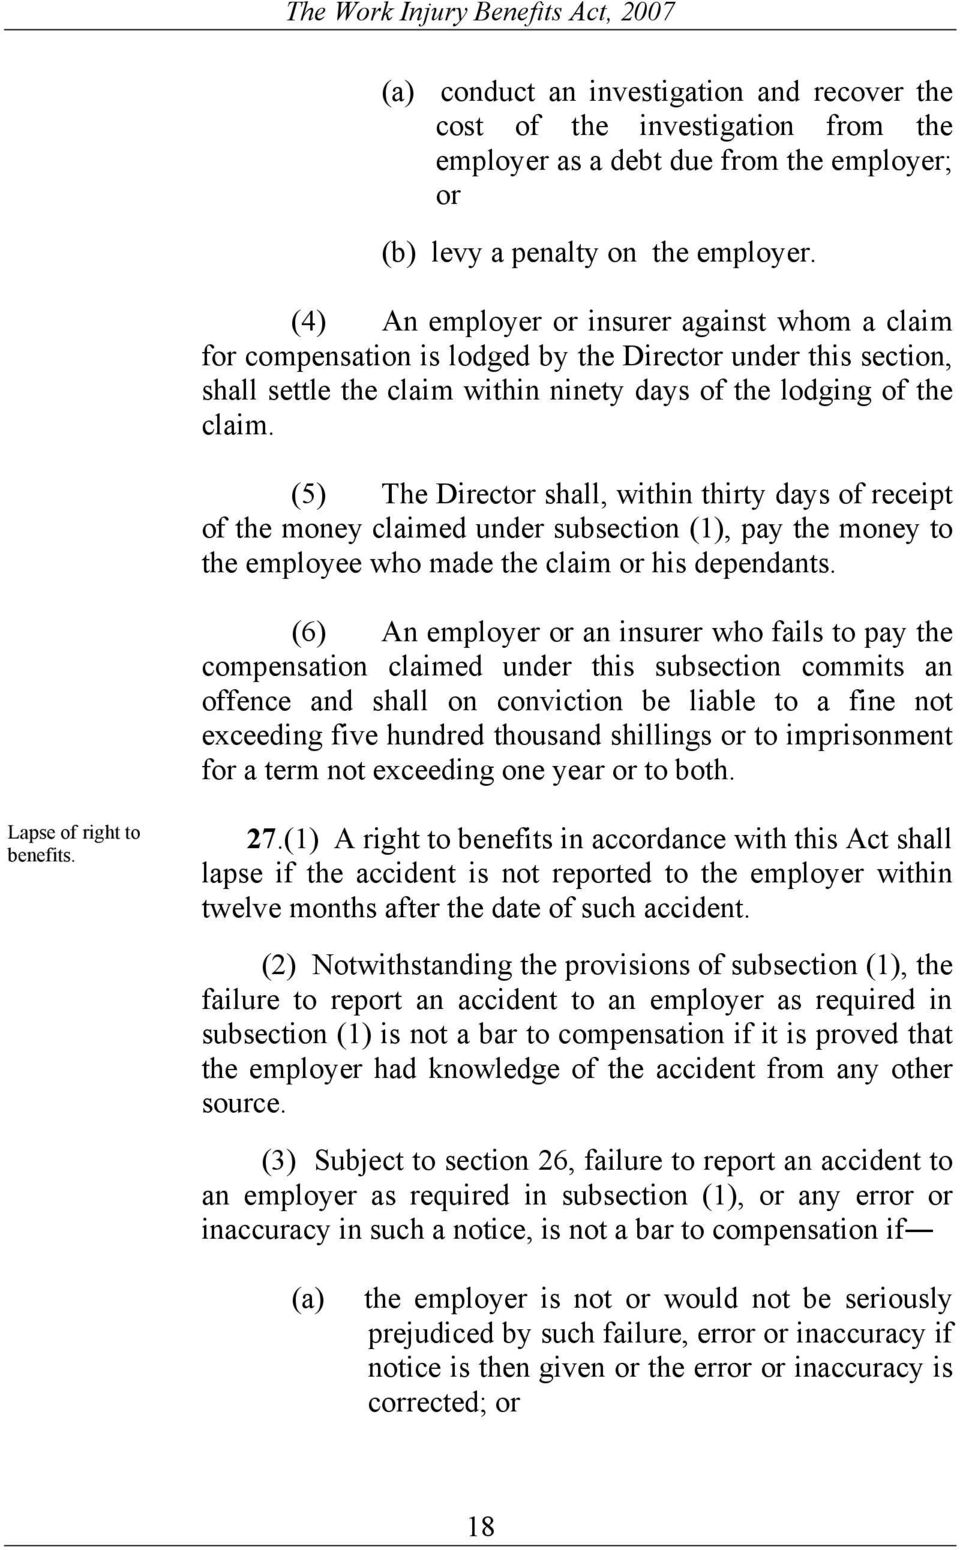 (5) The Director shall, within thirty days of receipt of the money claimed under subsection (1), pay the money to the employee who made the claim or his dependants.